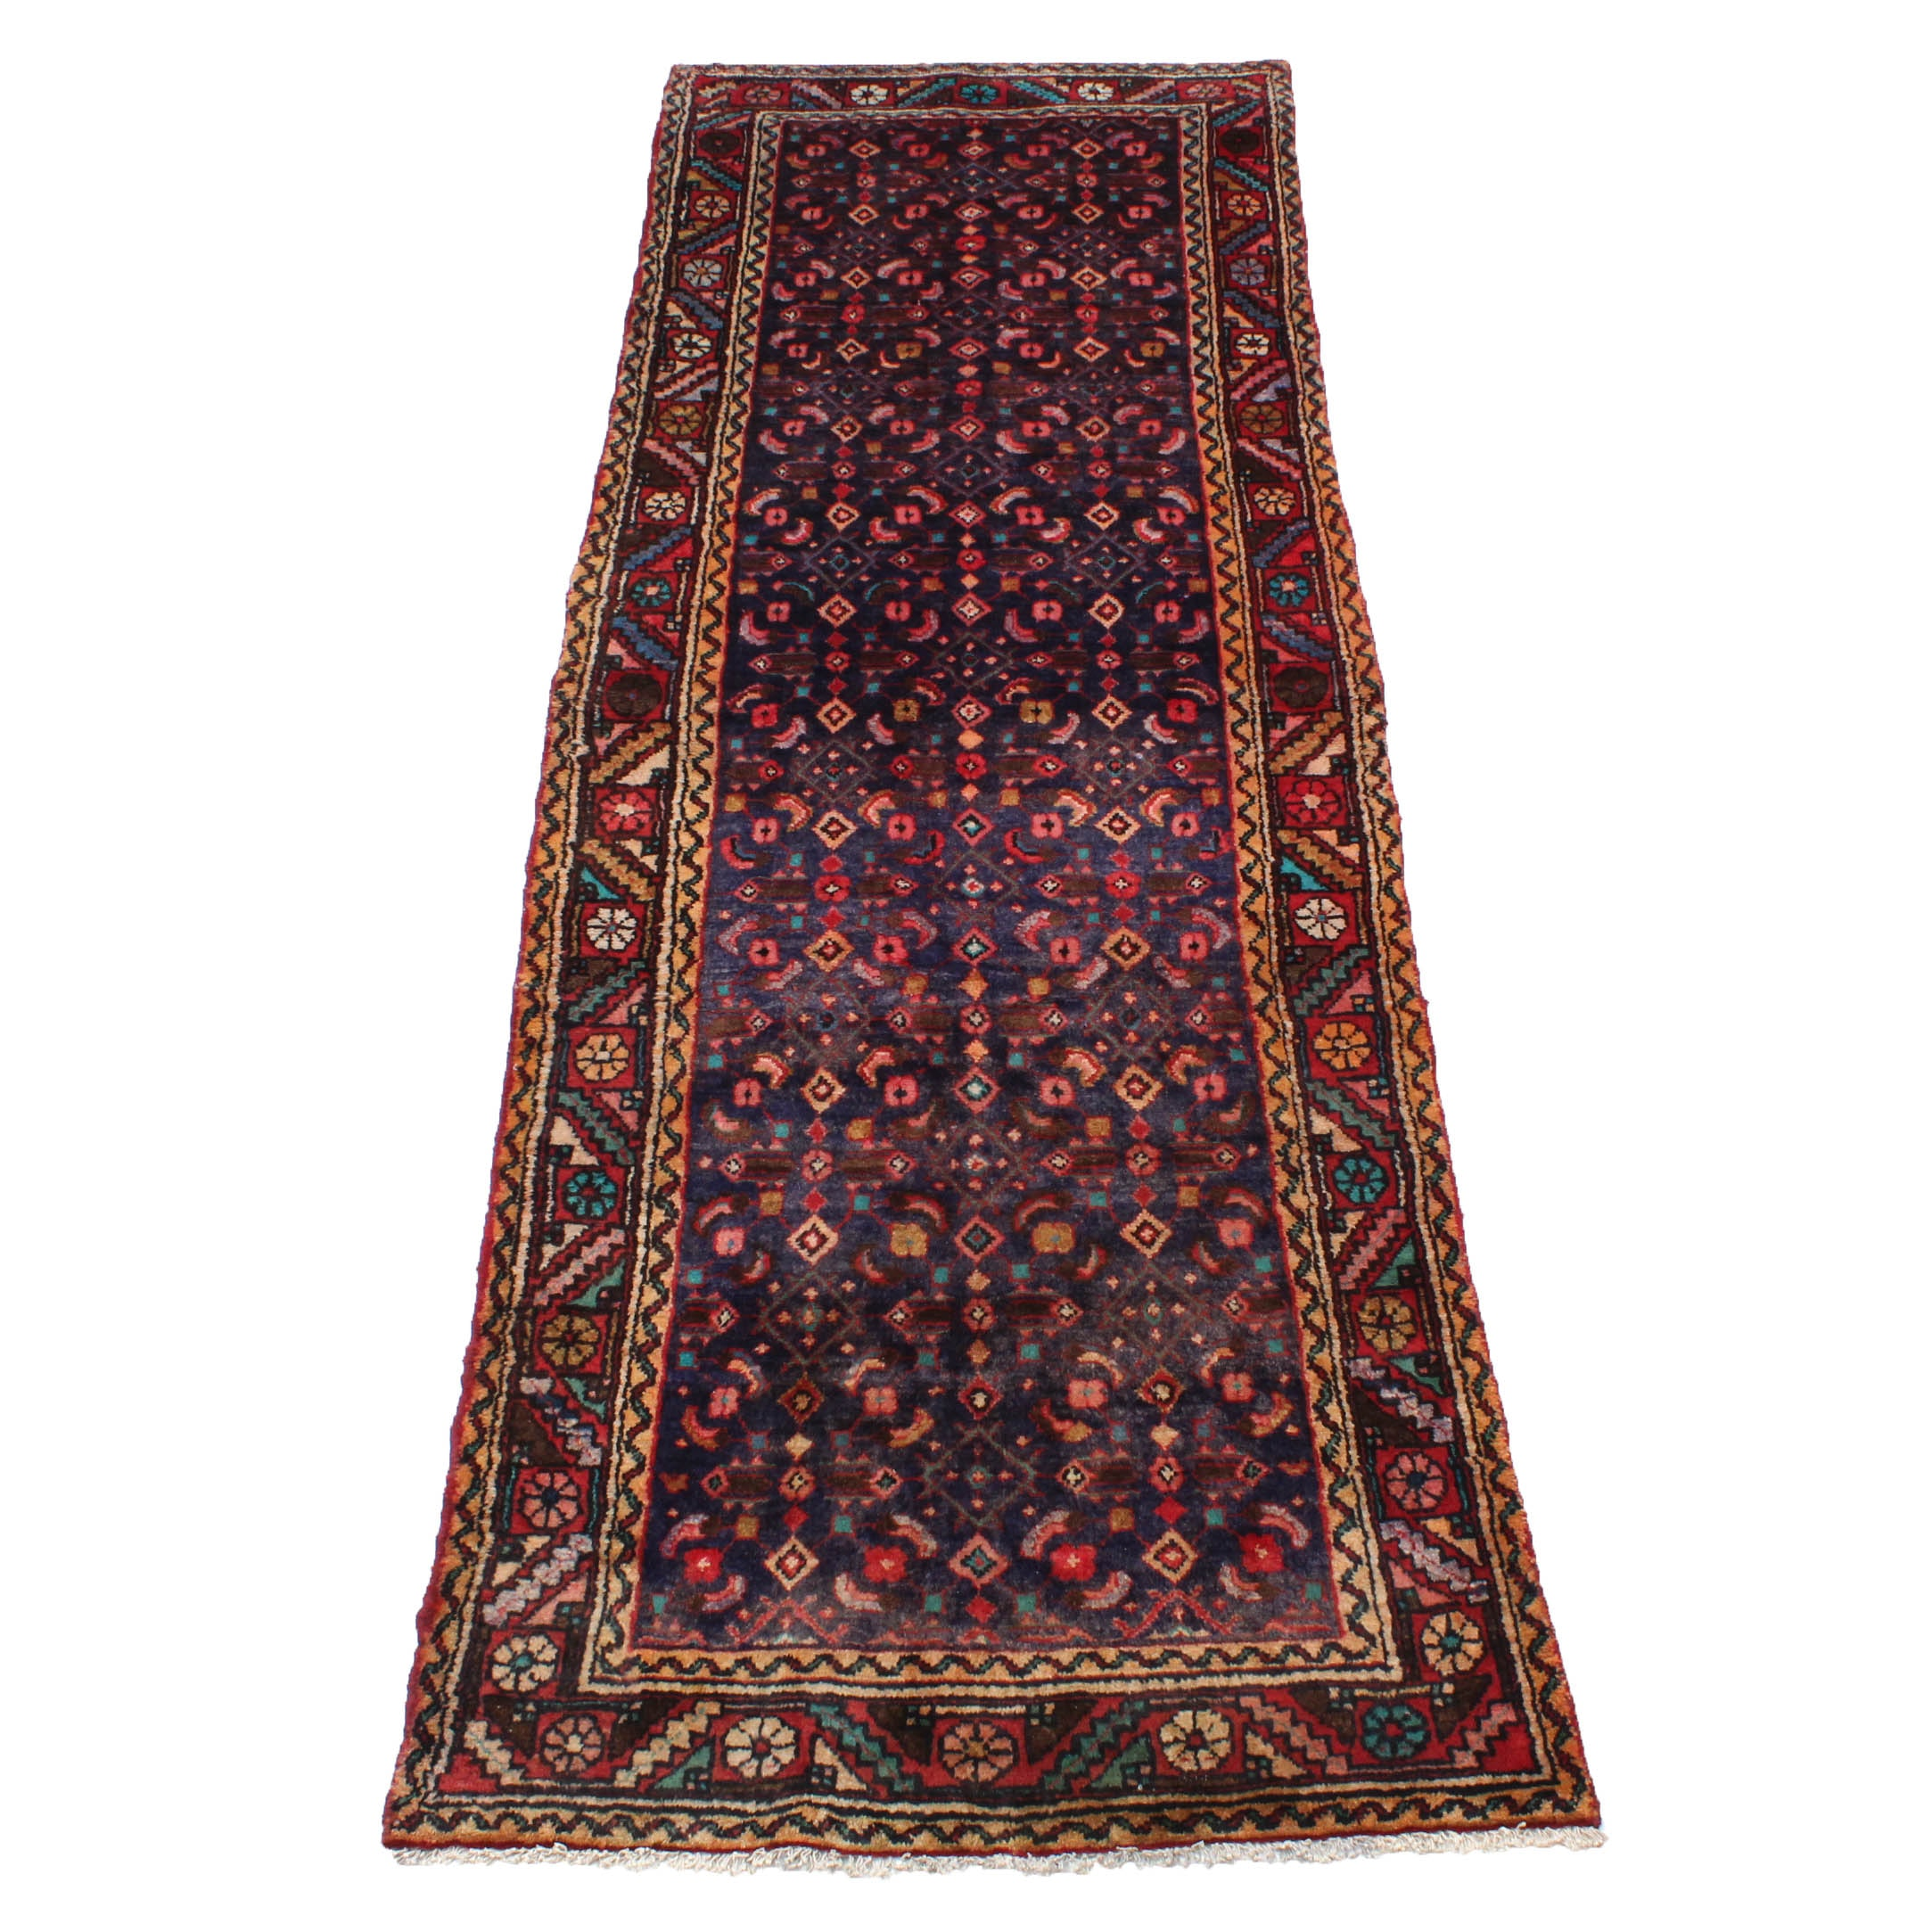 Semi-Antique Hand-Knotted Persian Mahal Runner